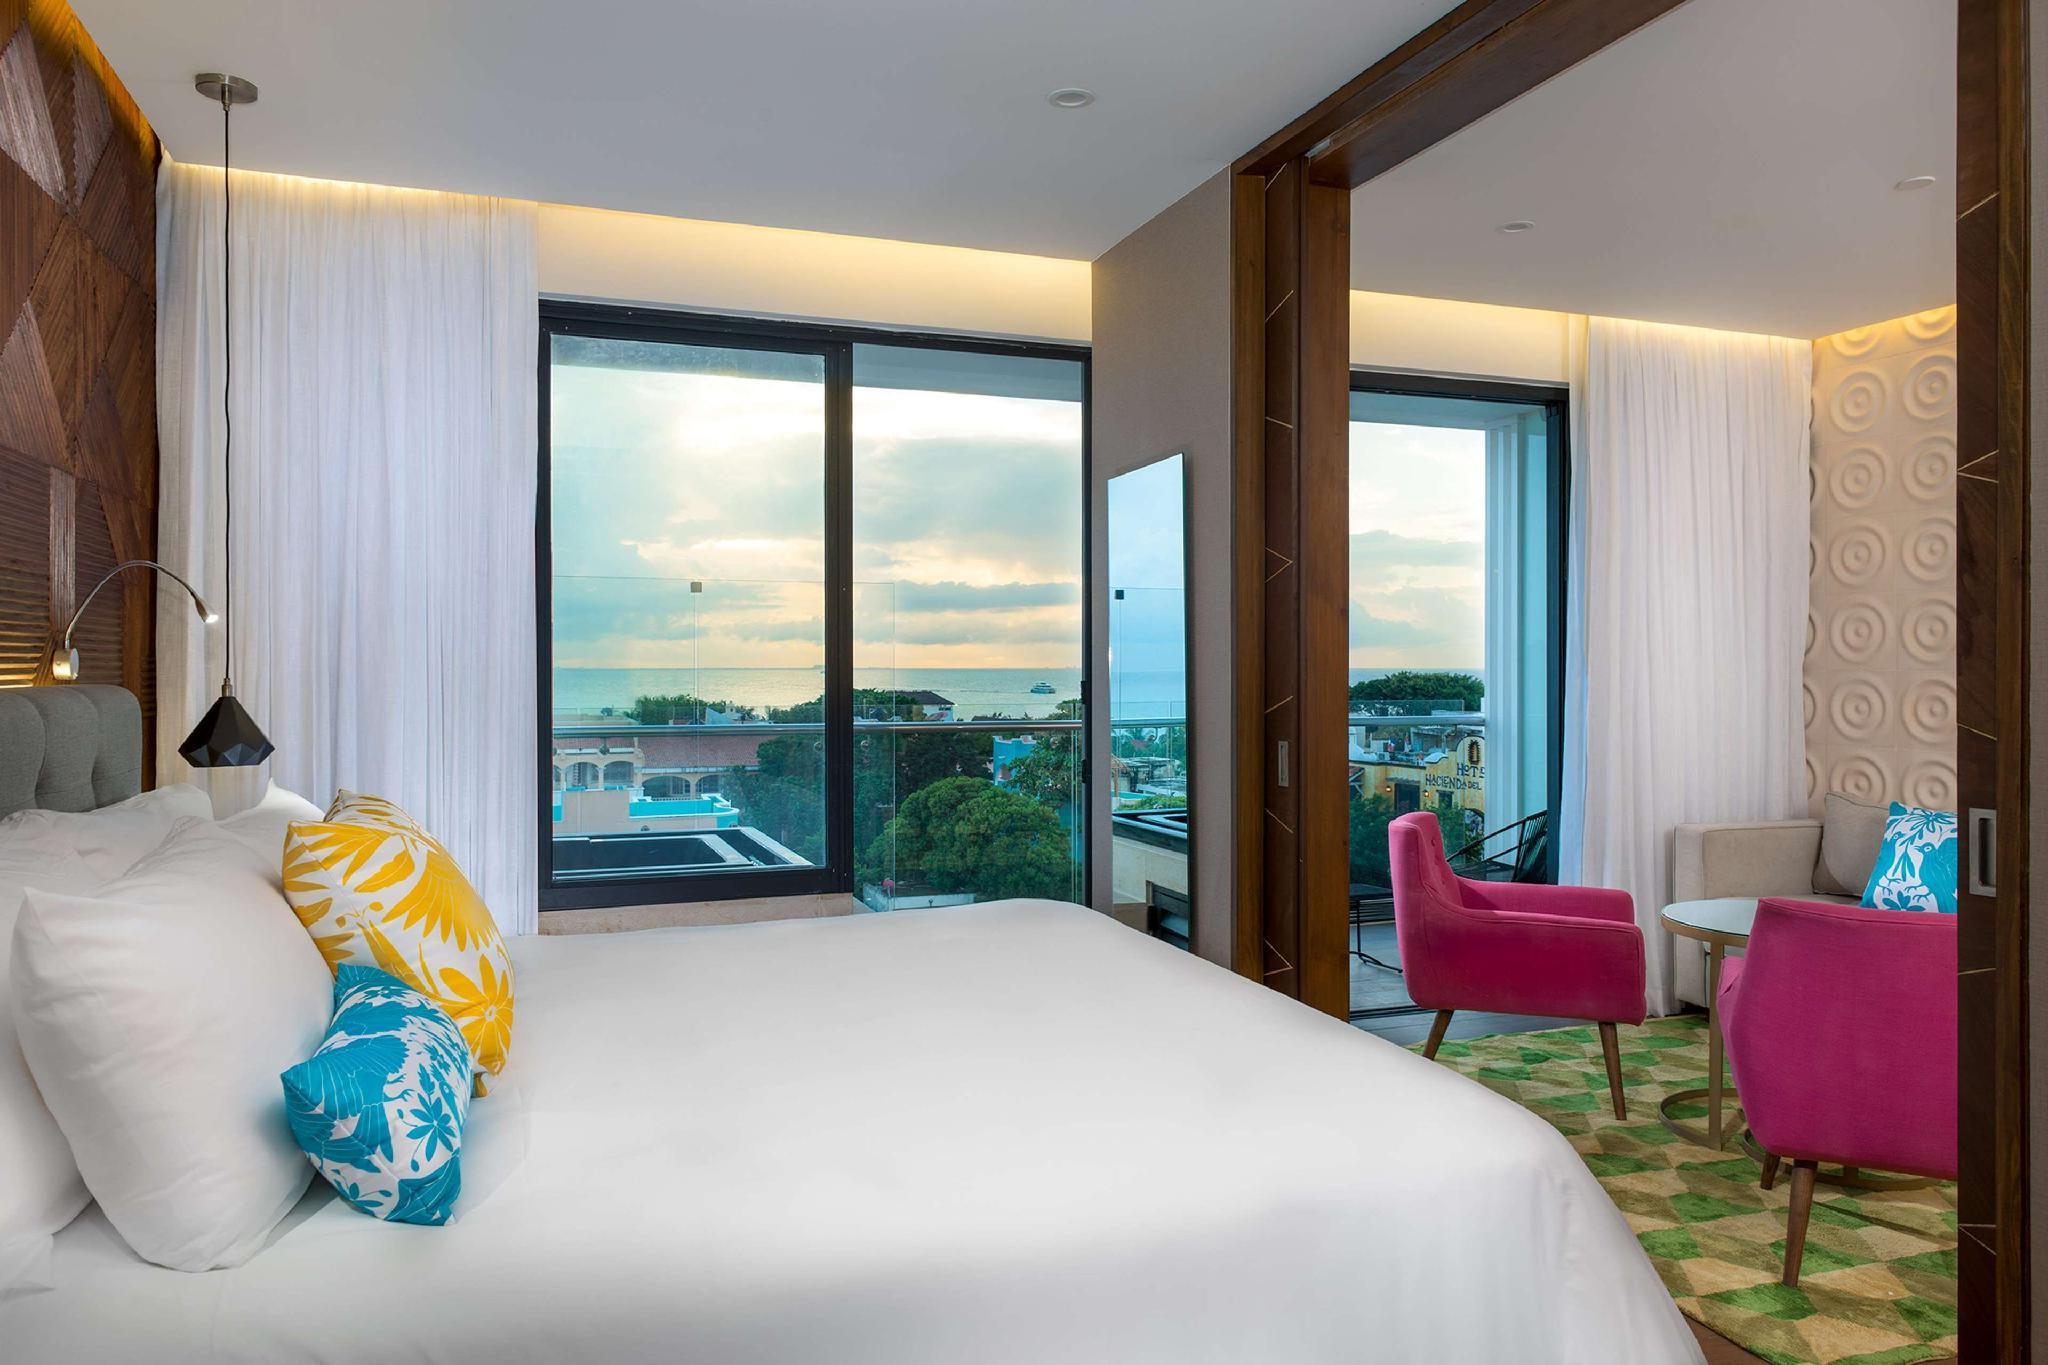 1 King Bed 1 Bedroom Suite Whrlpl/Partialial Ocean View